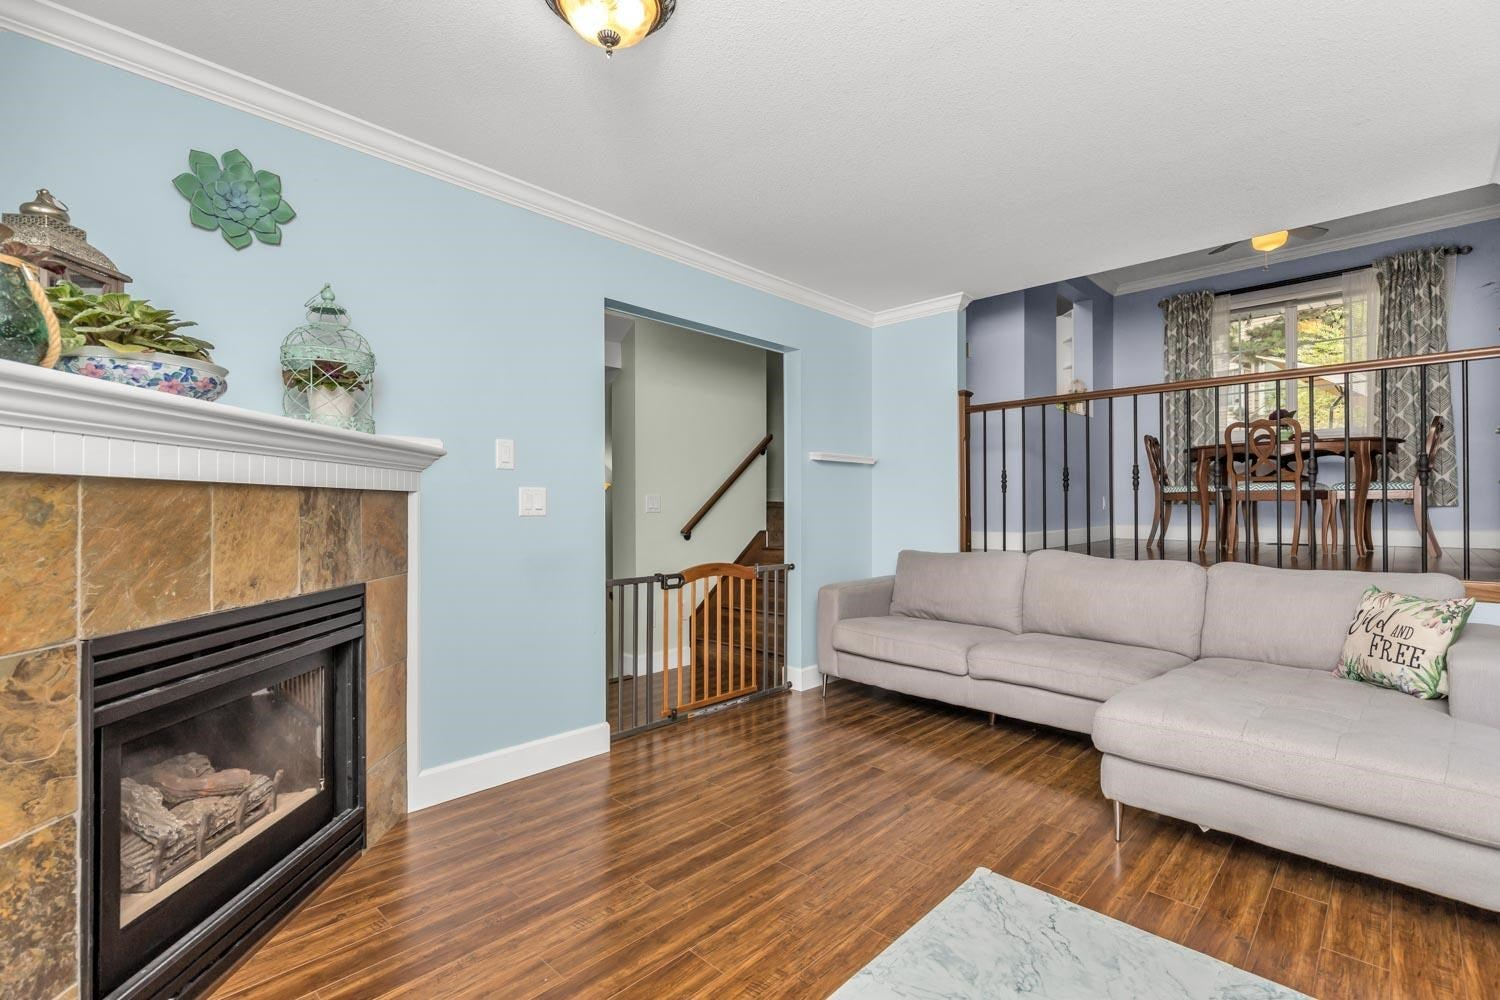 35 11229 232 STREET - East Central Townhouse for sale, 3 Bedrooms (R2604128) - #10